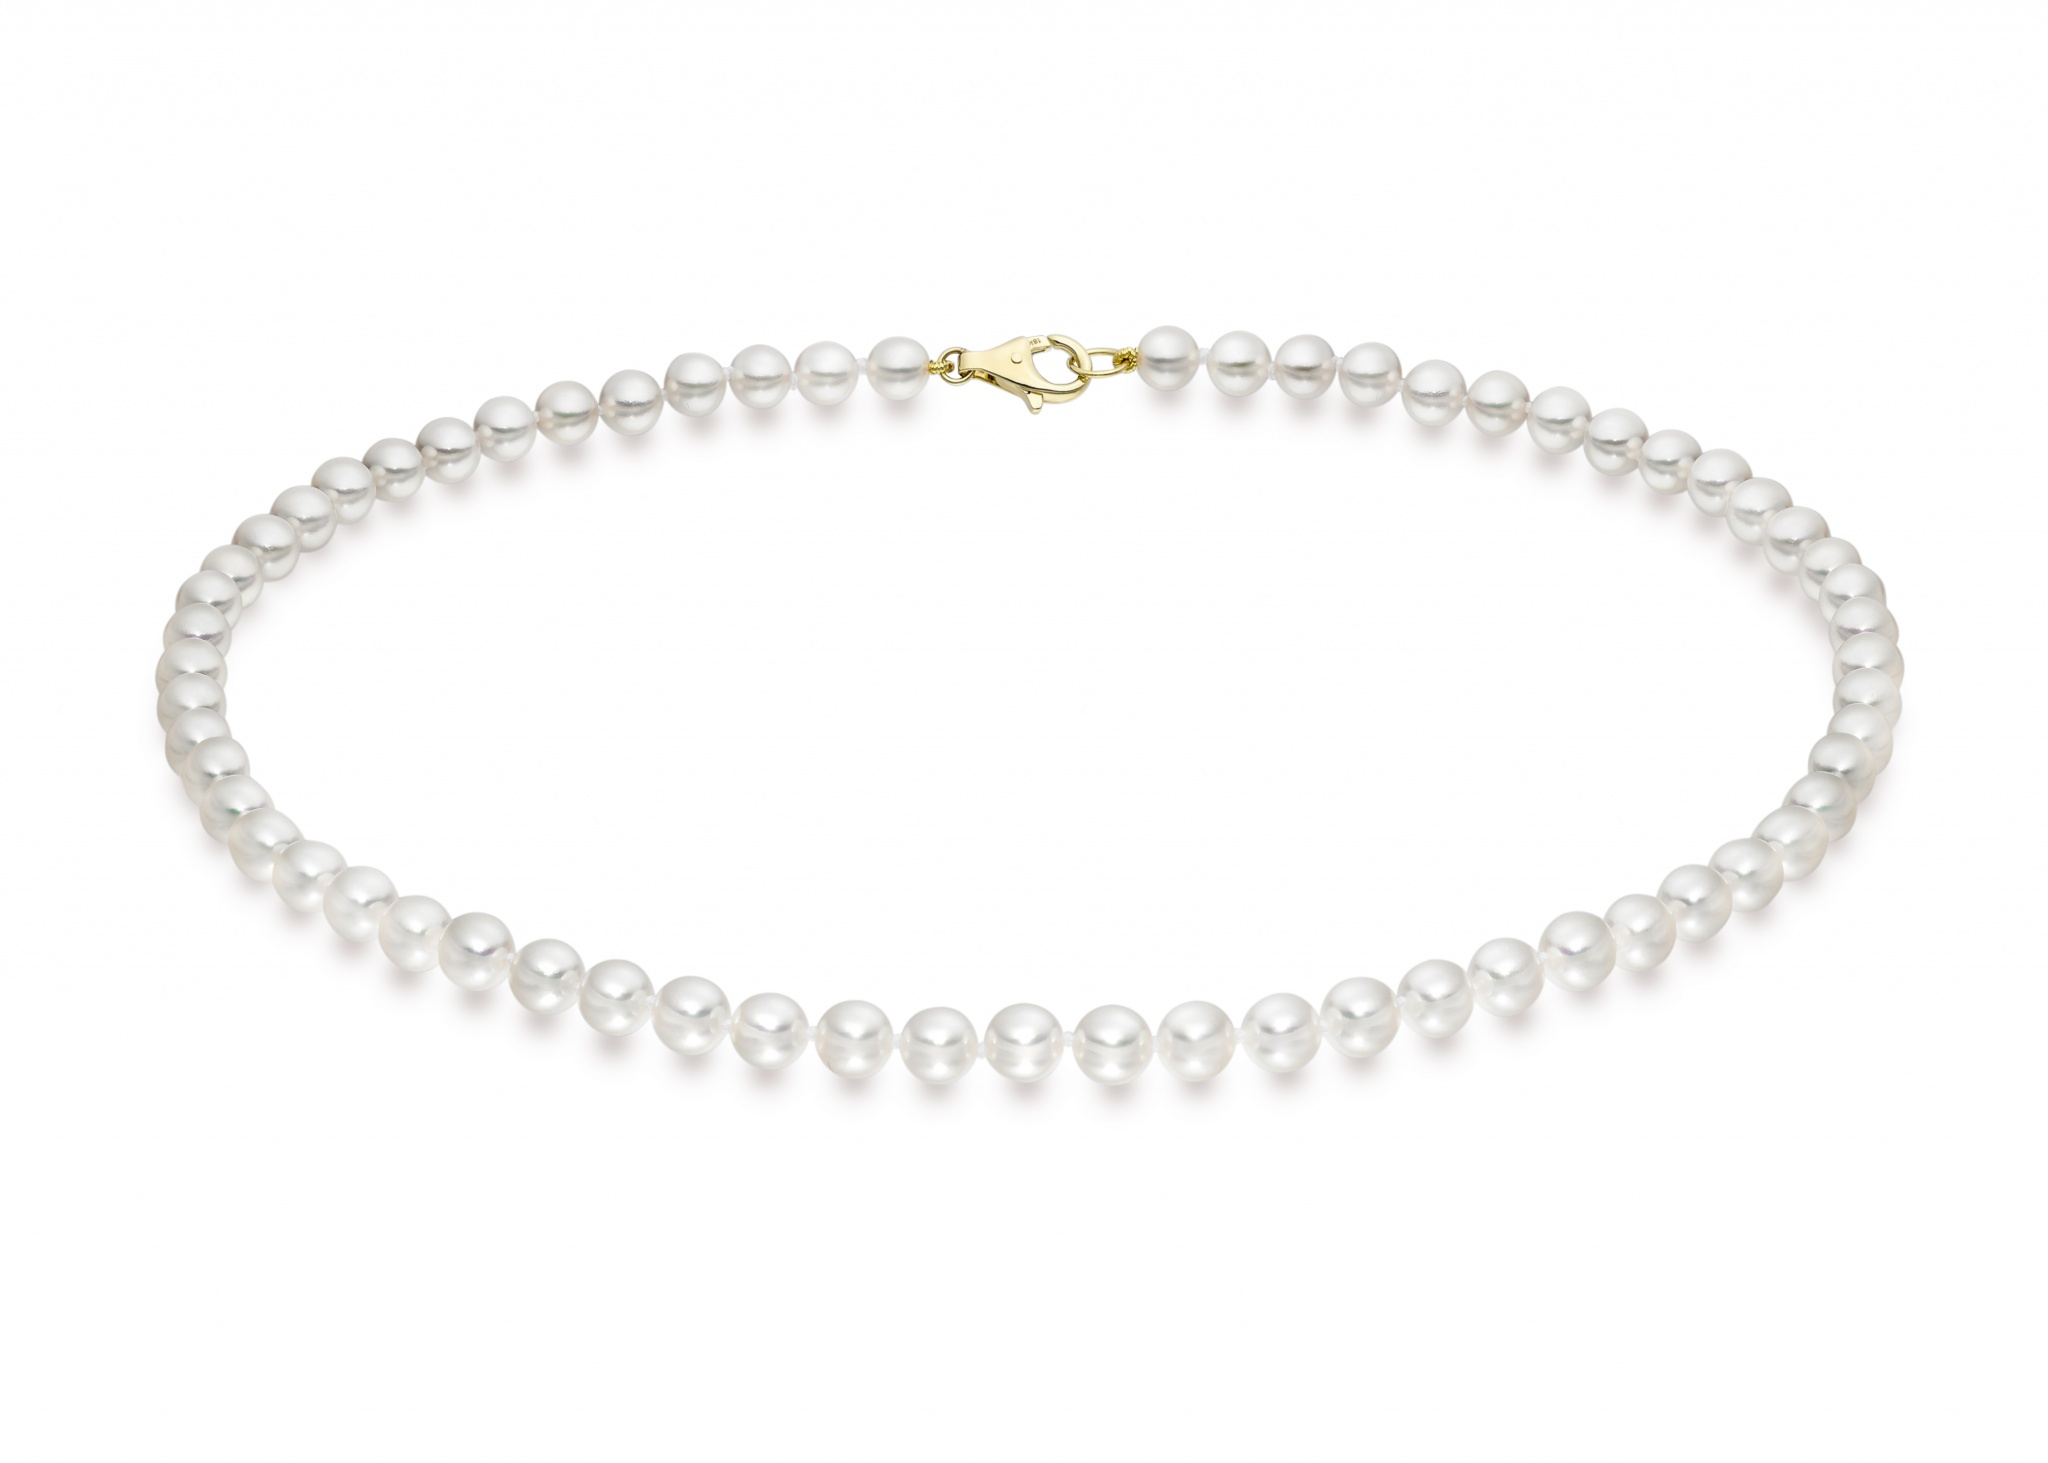 Single Strand White Akoya Pearl Necklace with 18ct Gold Clasp-ANVAR02630264-1